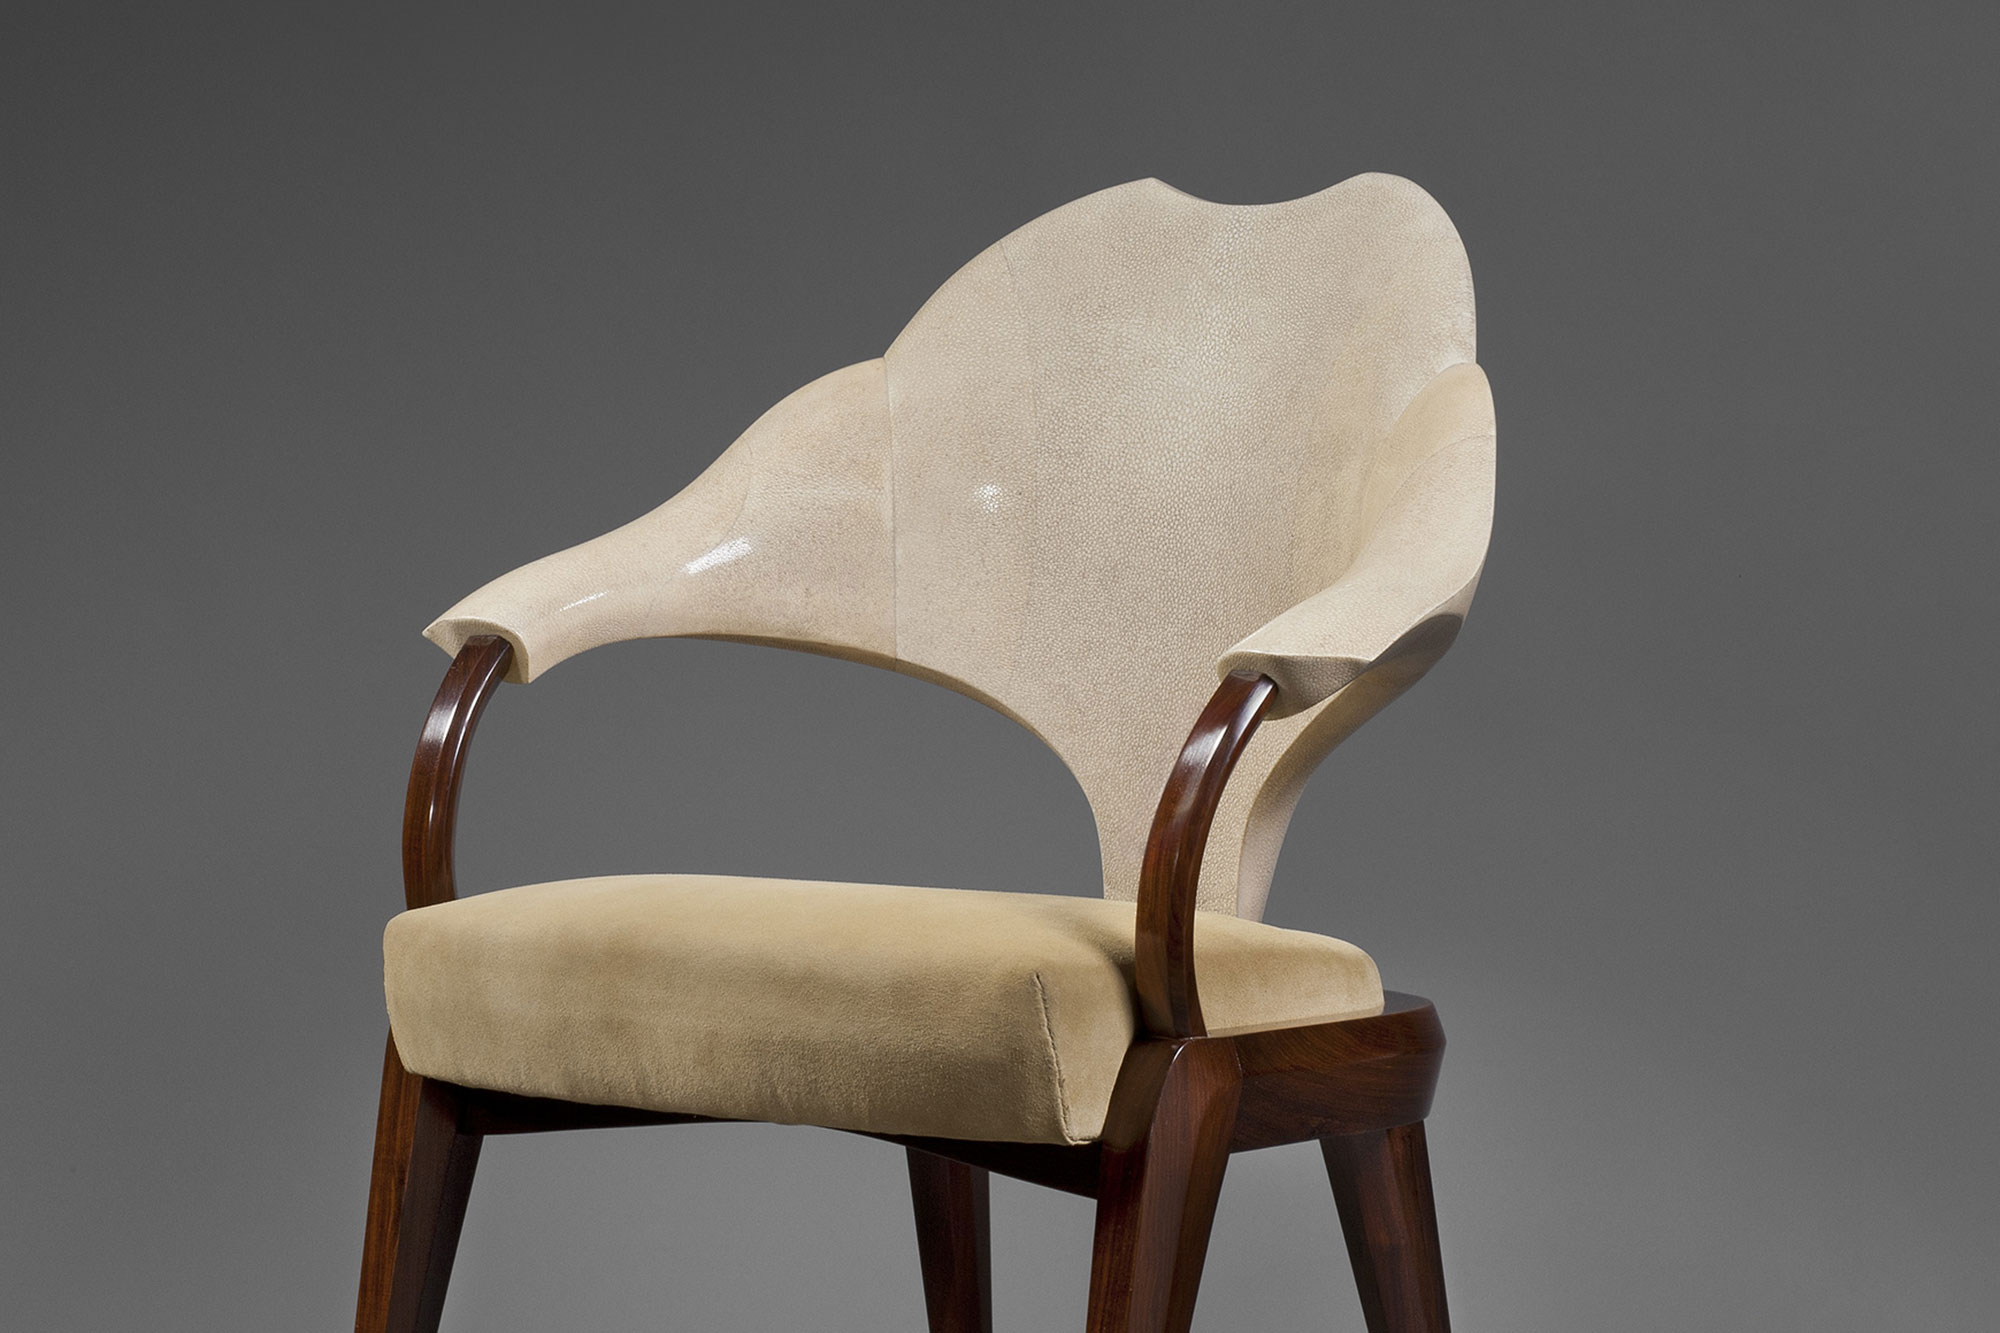 unique pieces of furniture. This Results In Unique Pieces Of Furniture With Pure, Timeless, Resolutely Harmonious Lines. Those Same Skills Allow Us To Preserve And Prolong The Initial U